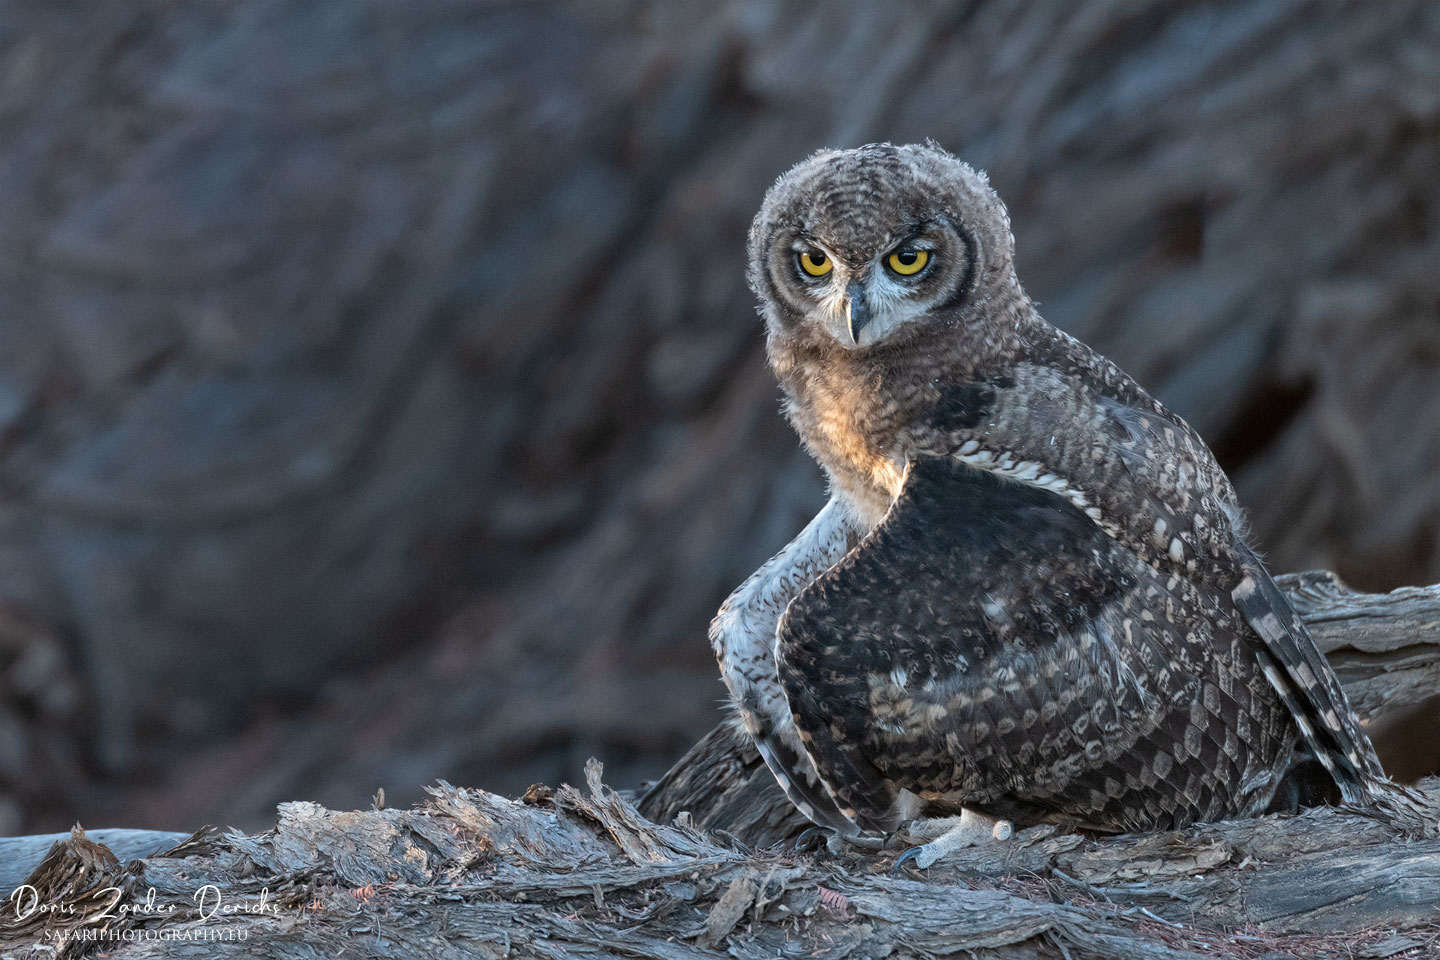 Spotted Eagle-Owl - Kgalagadi Transfrontier Park - South Africa